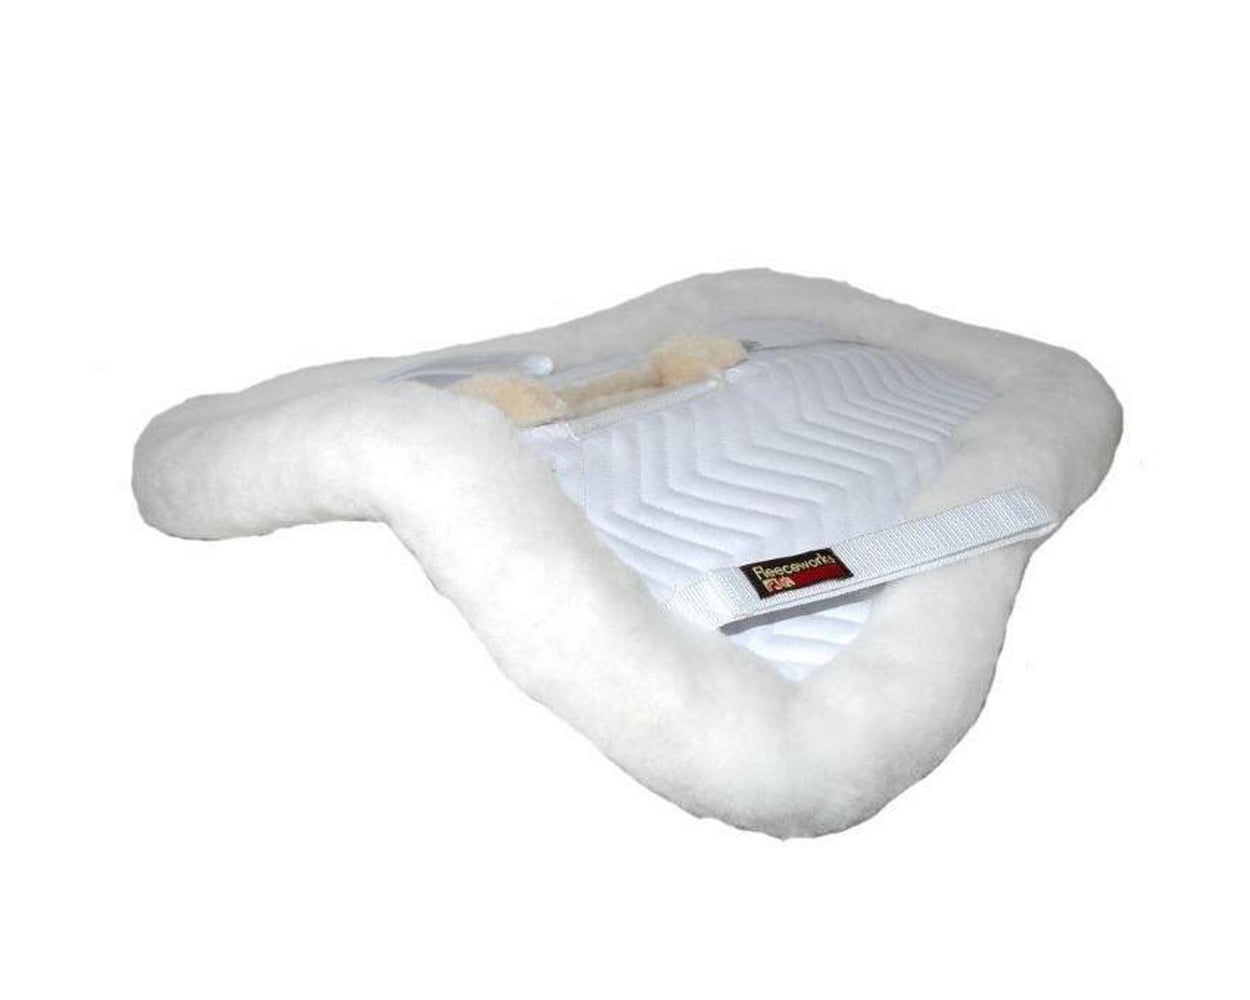 Fleeceworks Traditional Wither Relief Sheepskin Half Pad